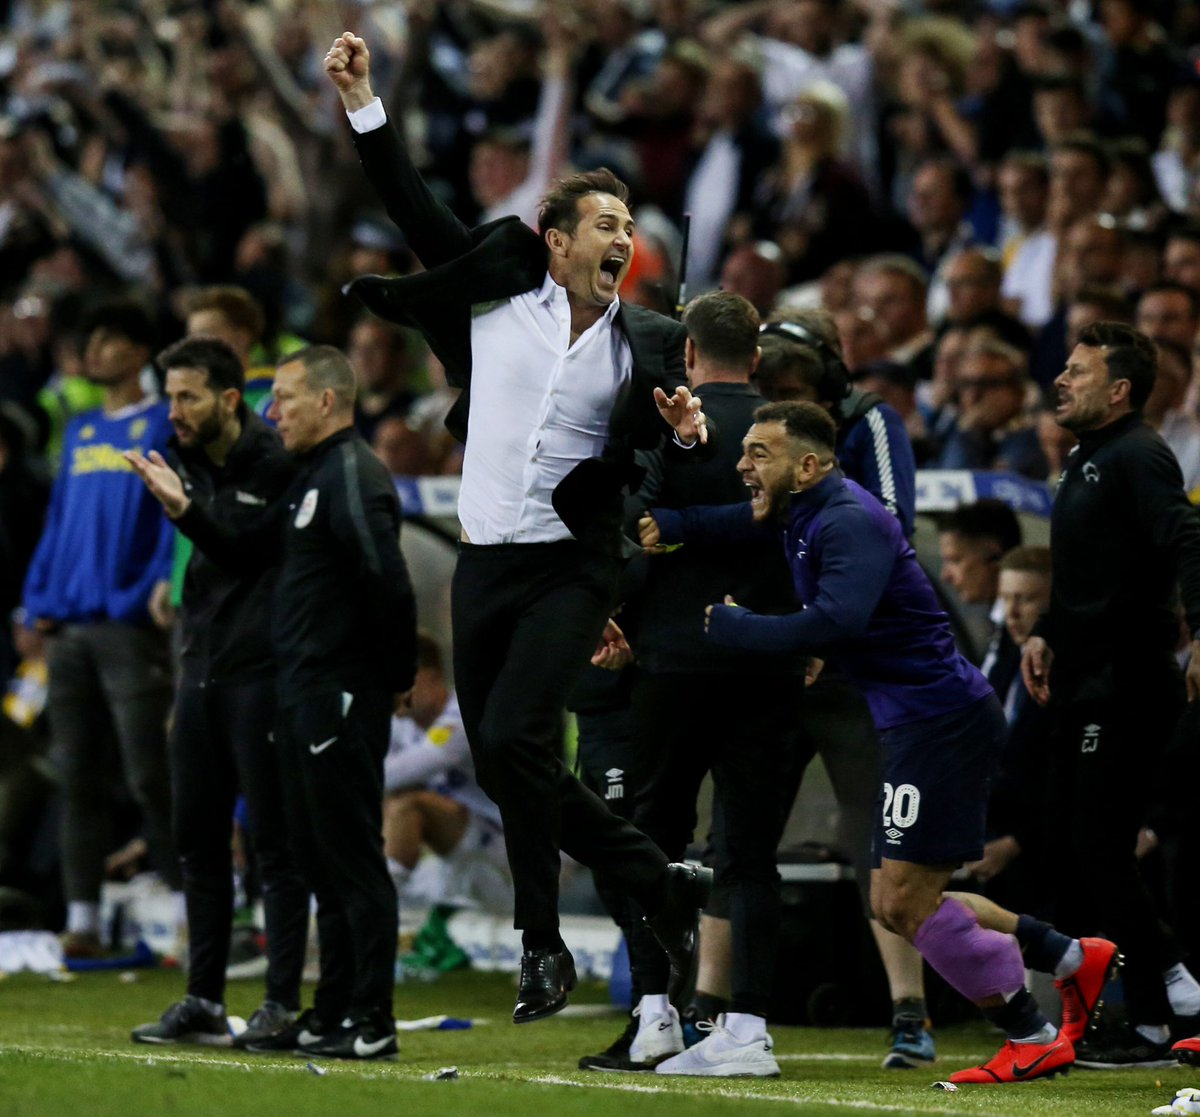 """Frank Lampard after the first leg: """"With some of the comebacks we've seen in football lately, I don't want anyone thinking this is over yet."""" Not wrong. 🔮 #EFL 